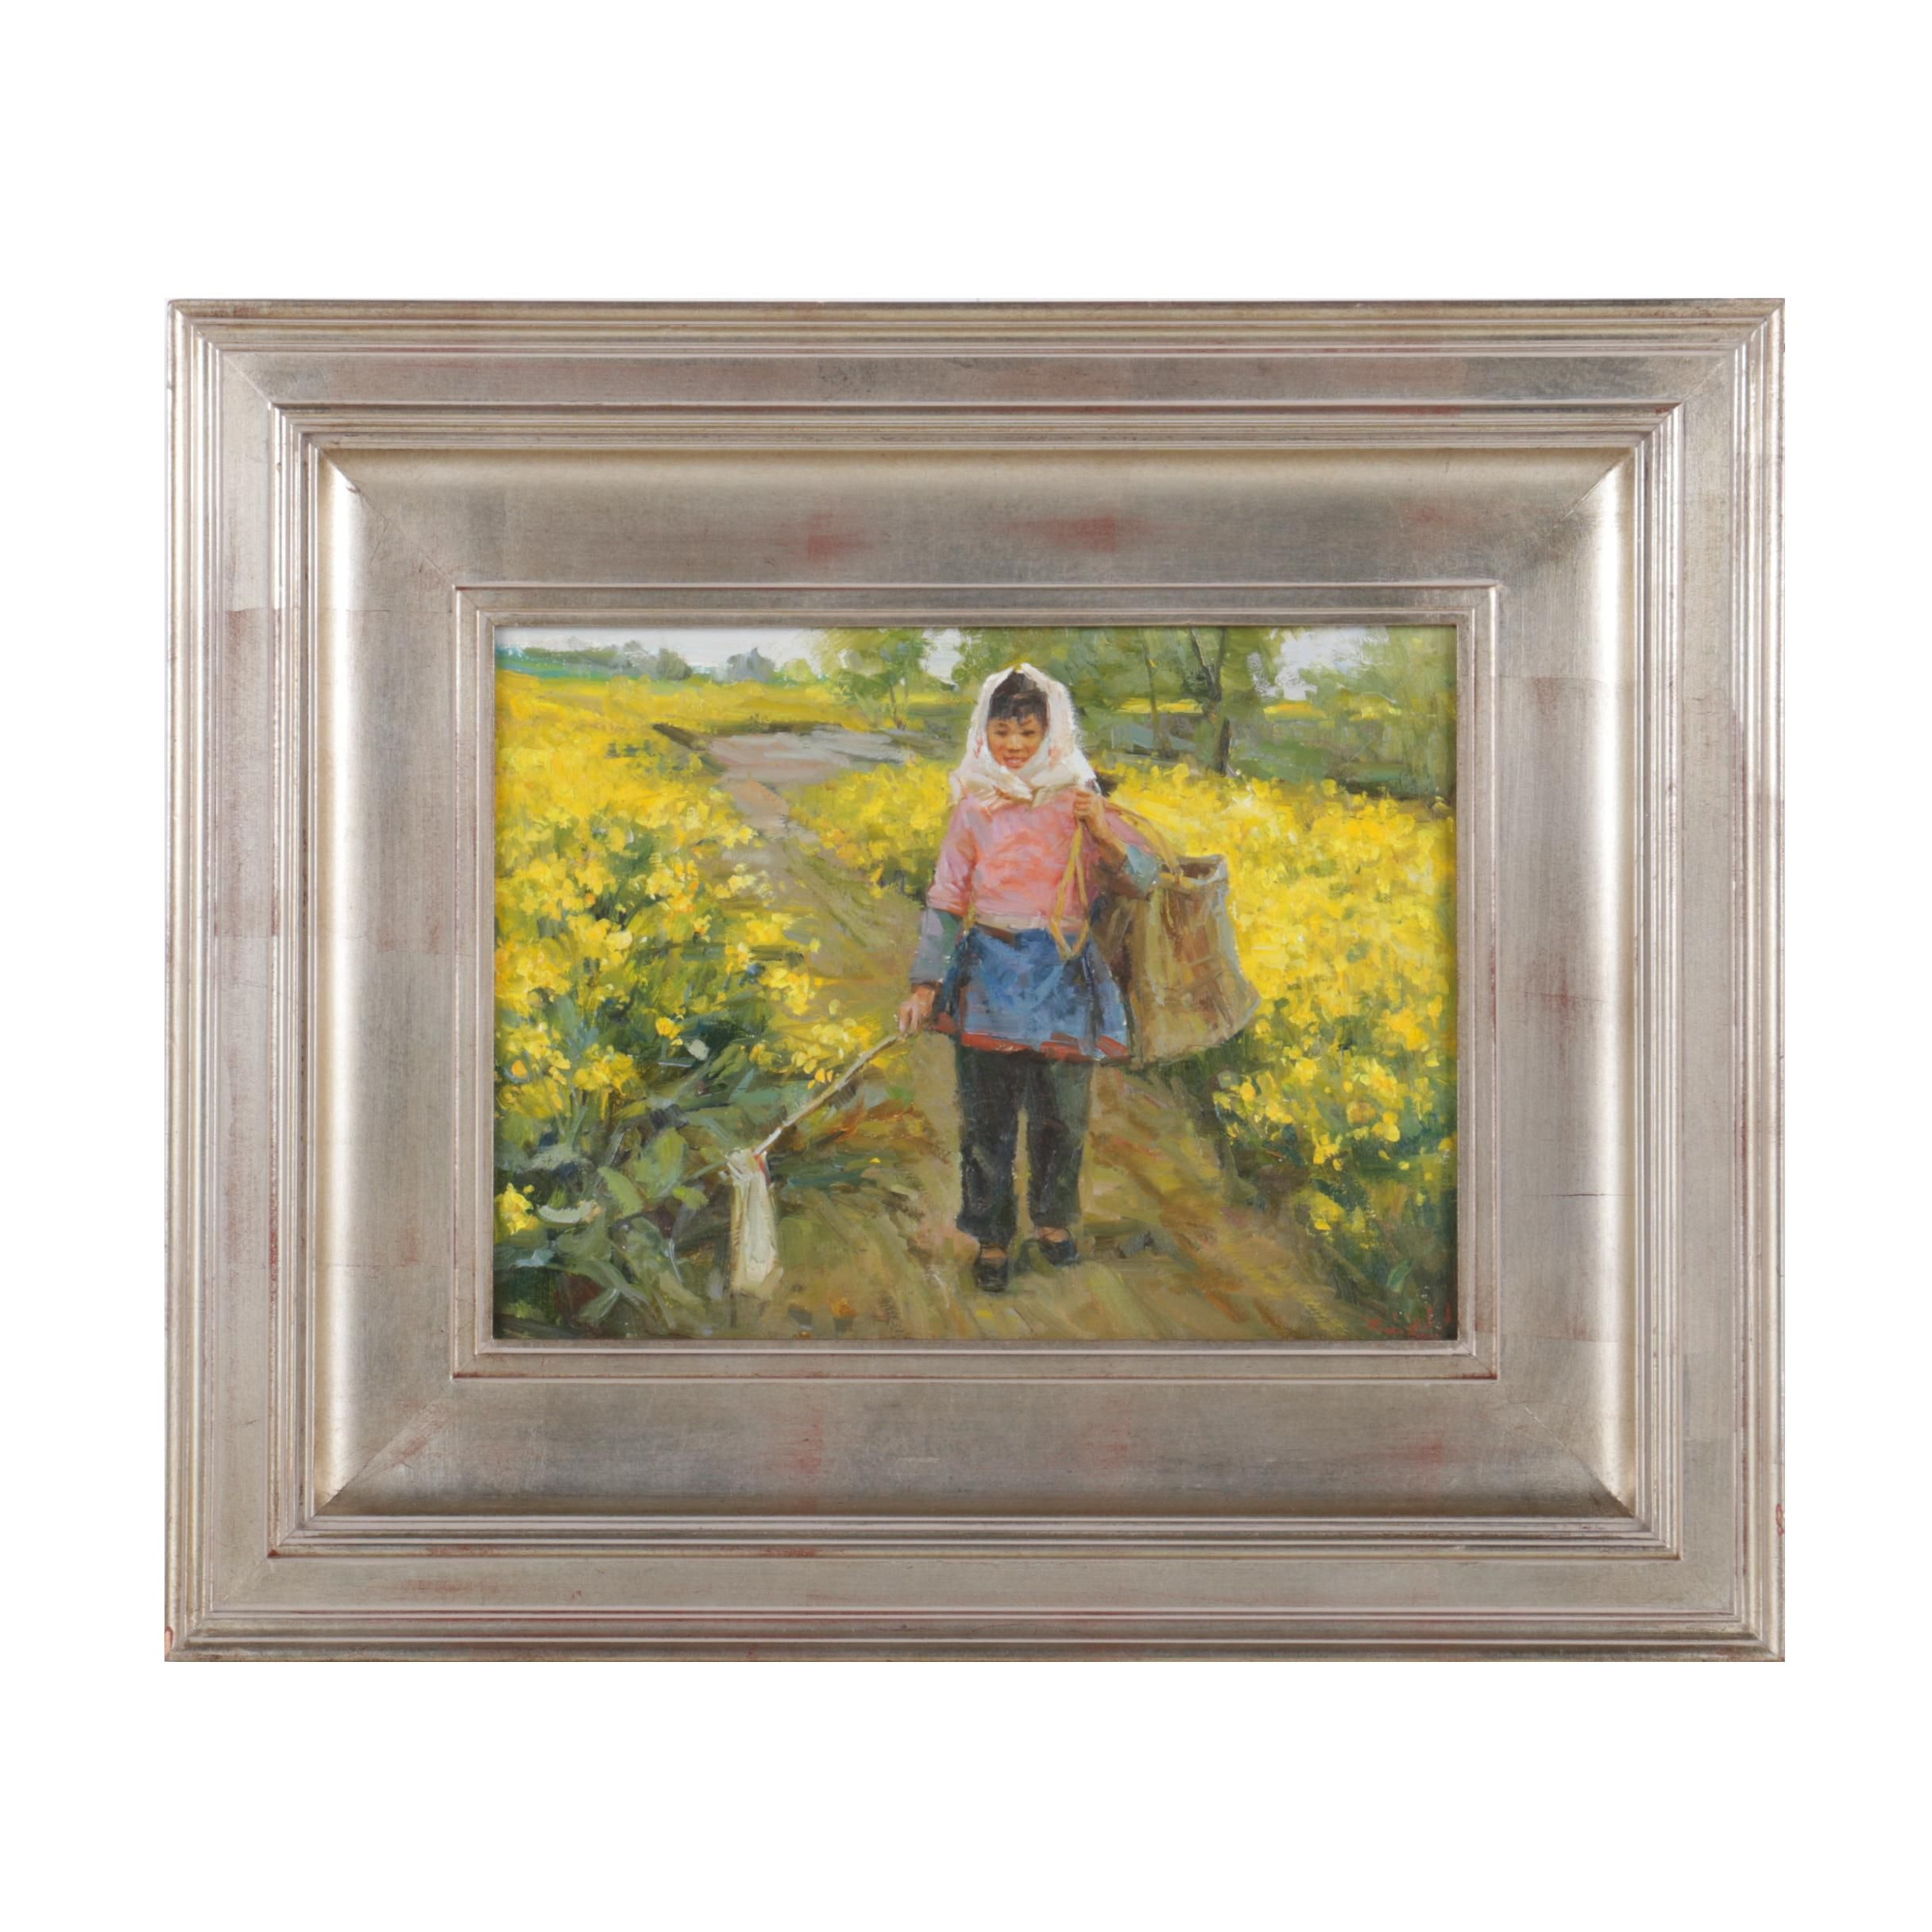 Oil Painting of Farmer in Field of Yellow Flowers